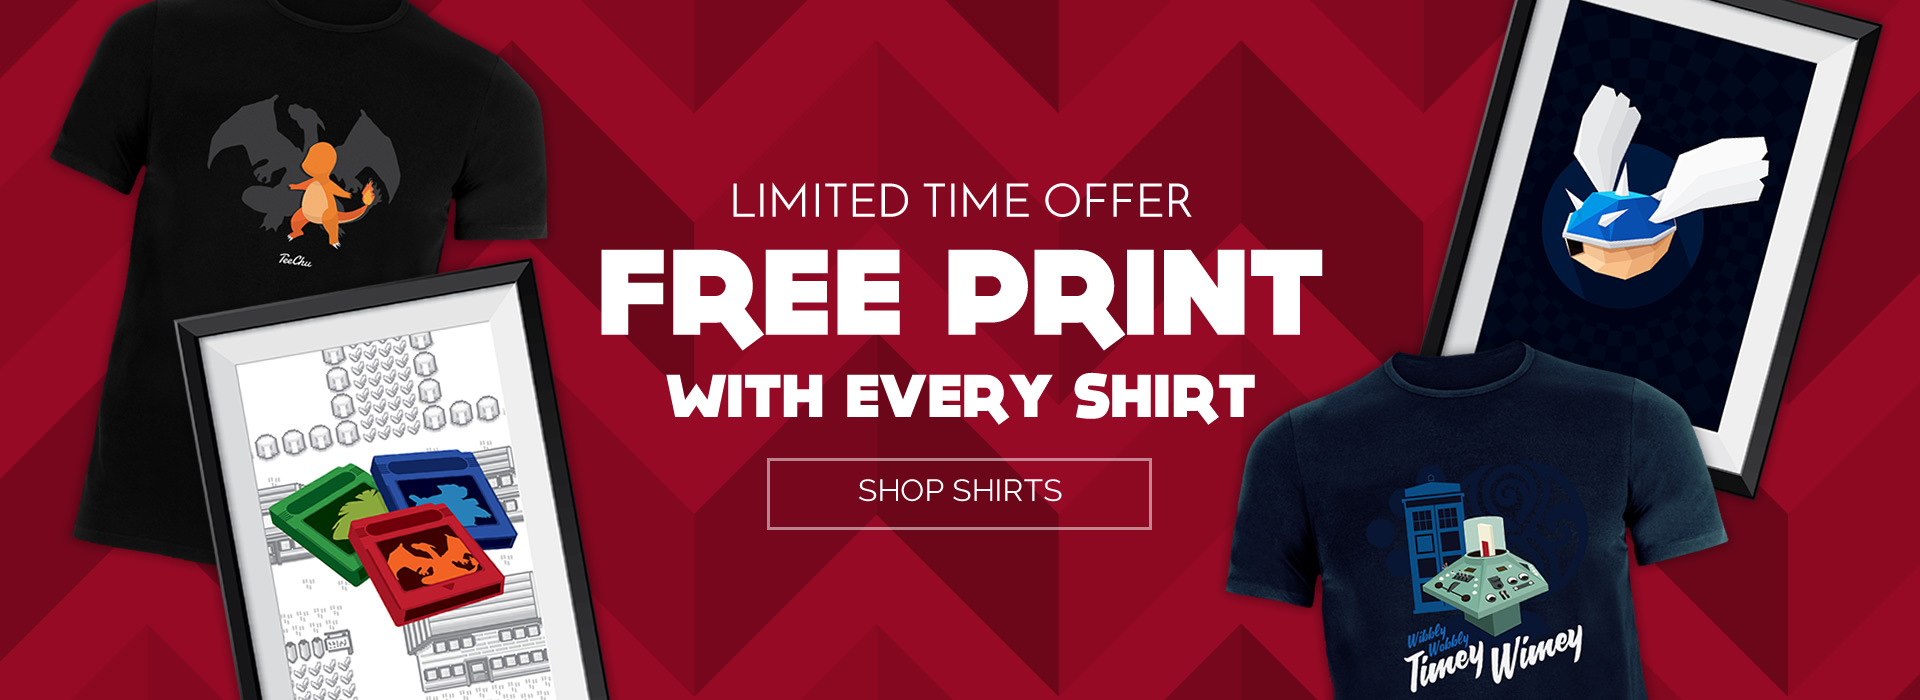 Free Prints with every shirt - limited time only!